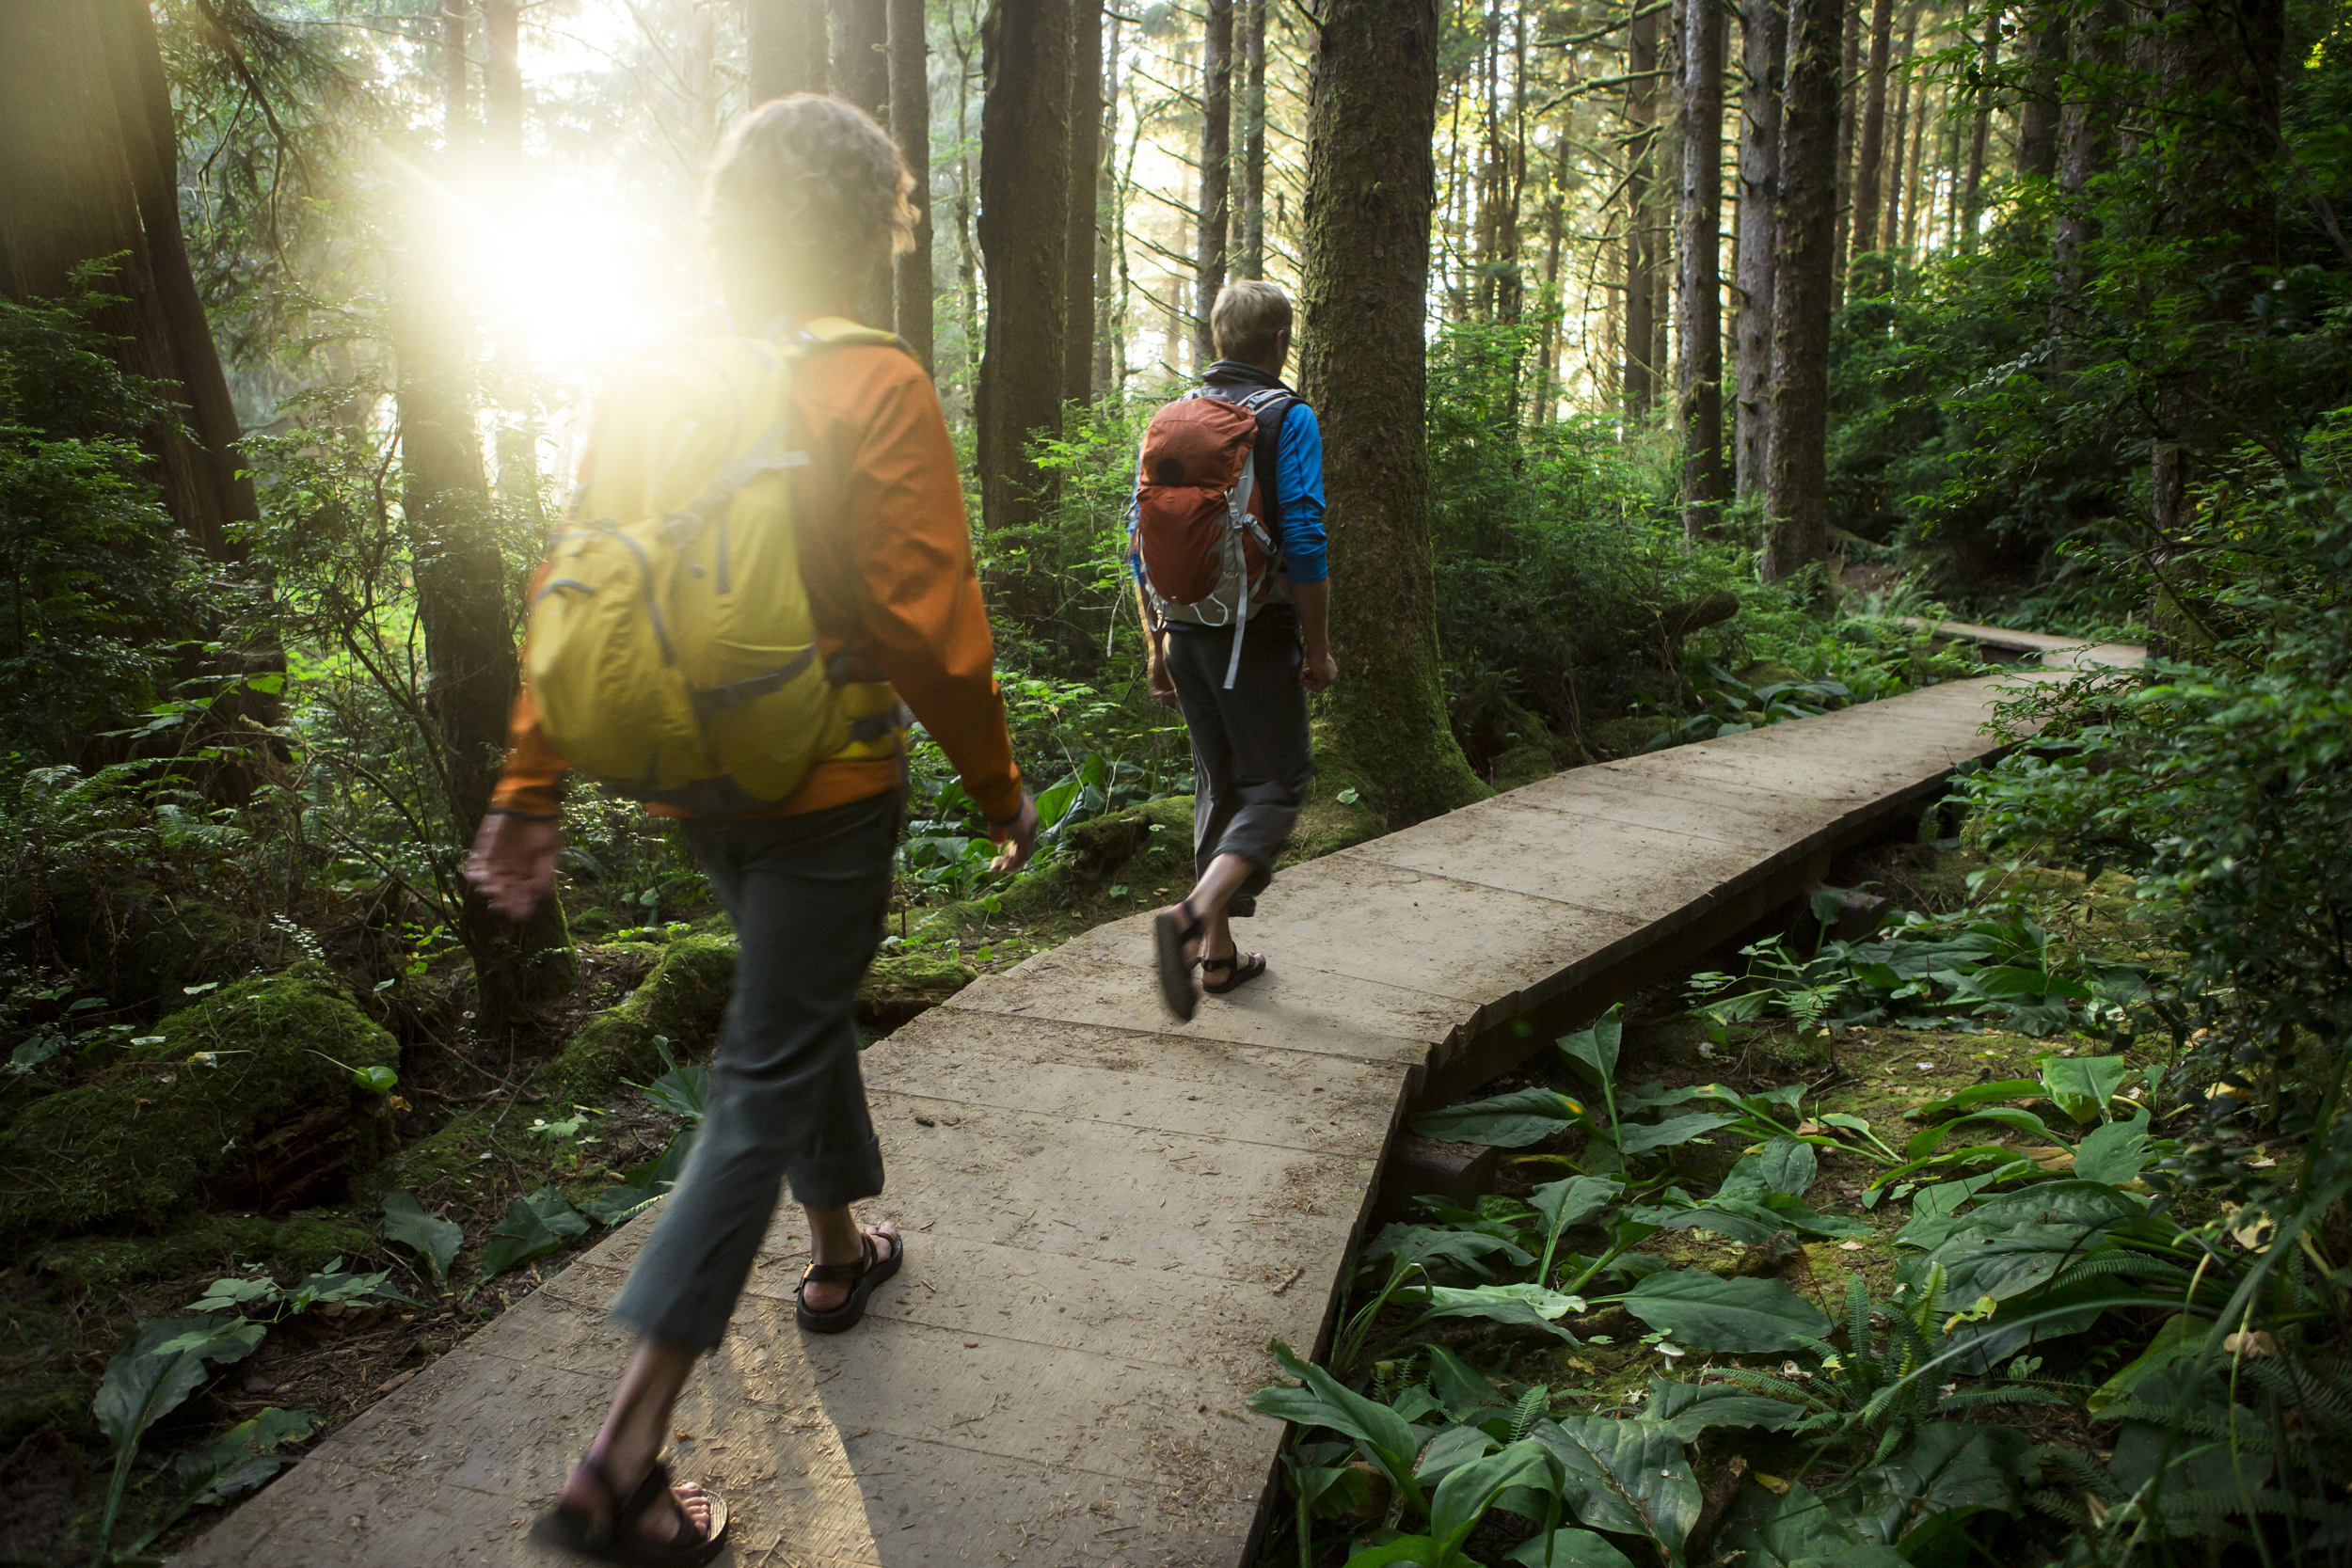 Why Walking Is the Most Underrated Form of Exercise